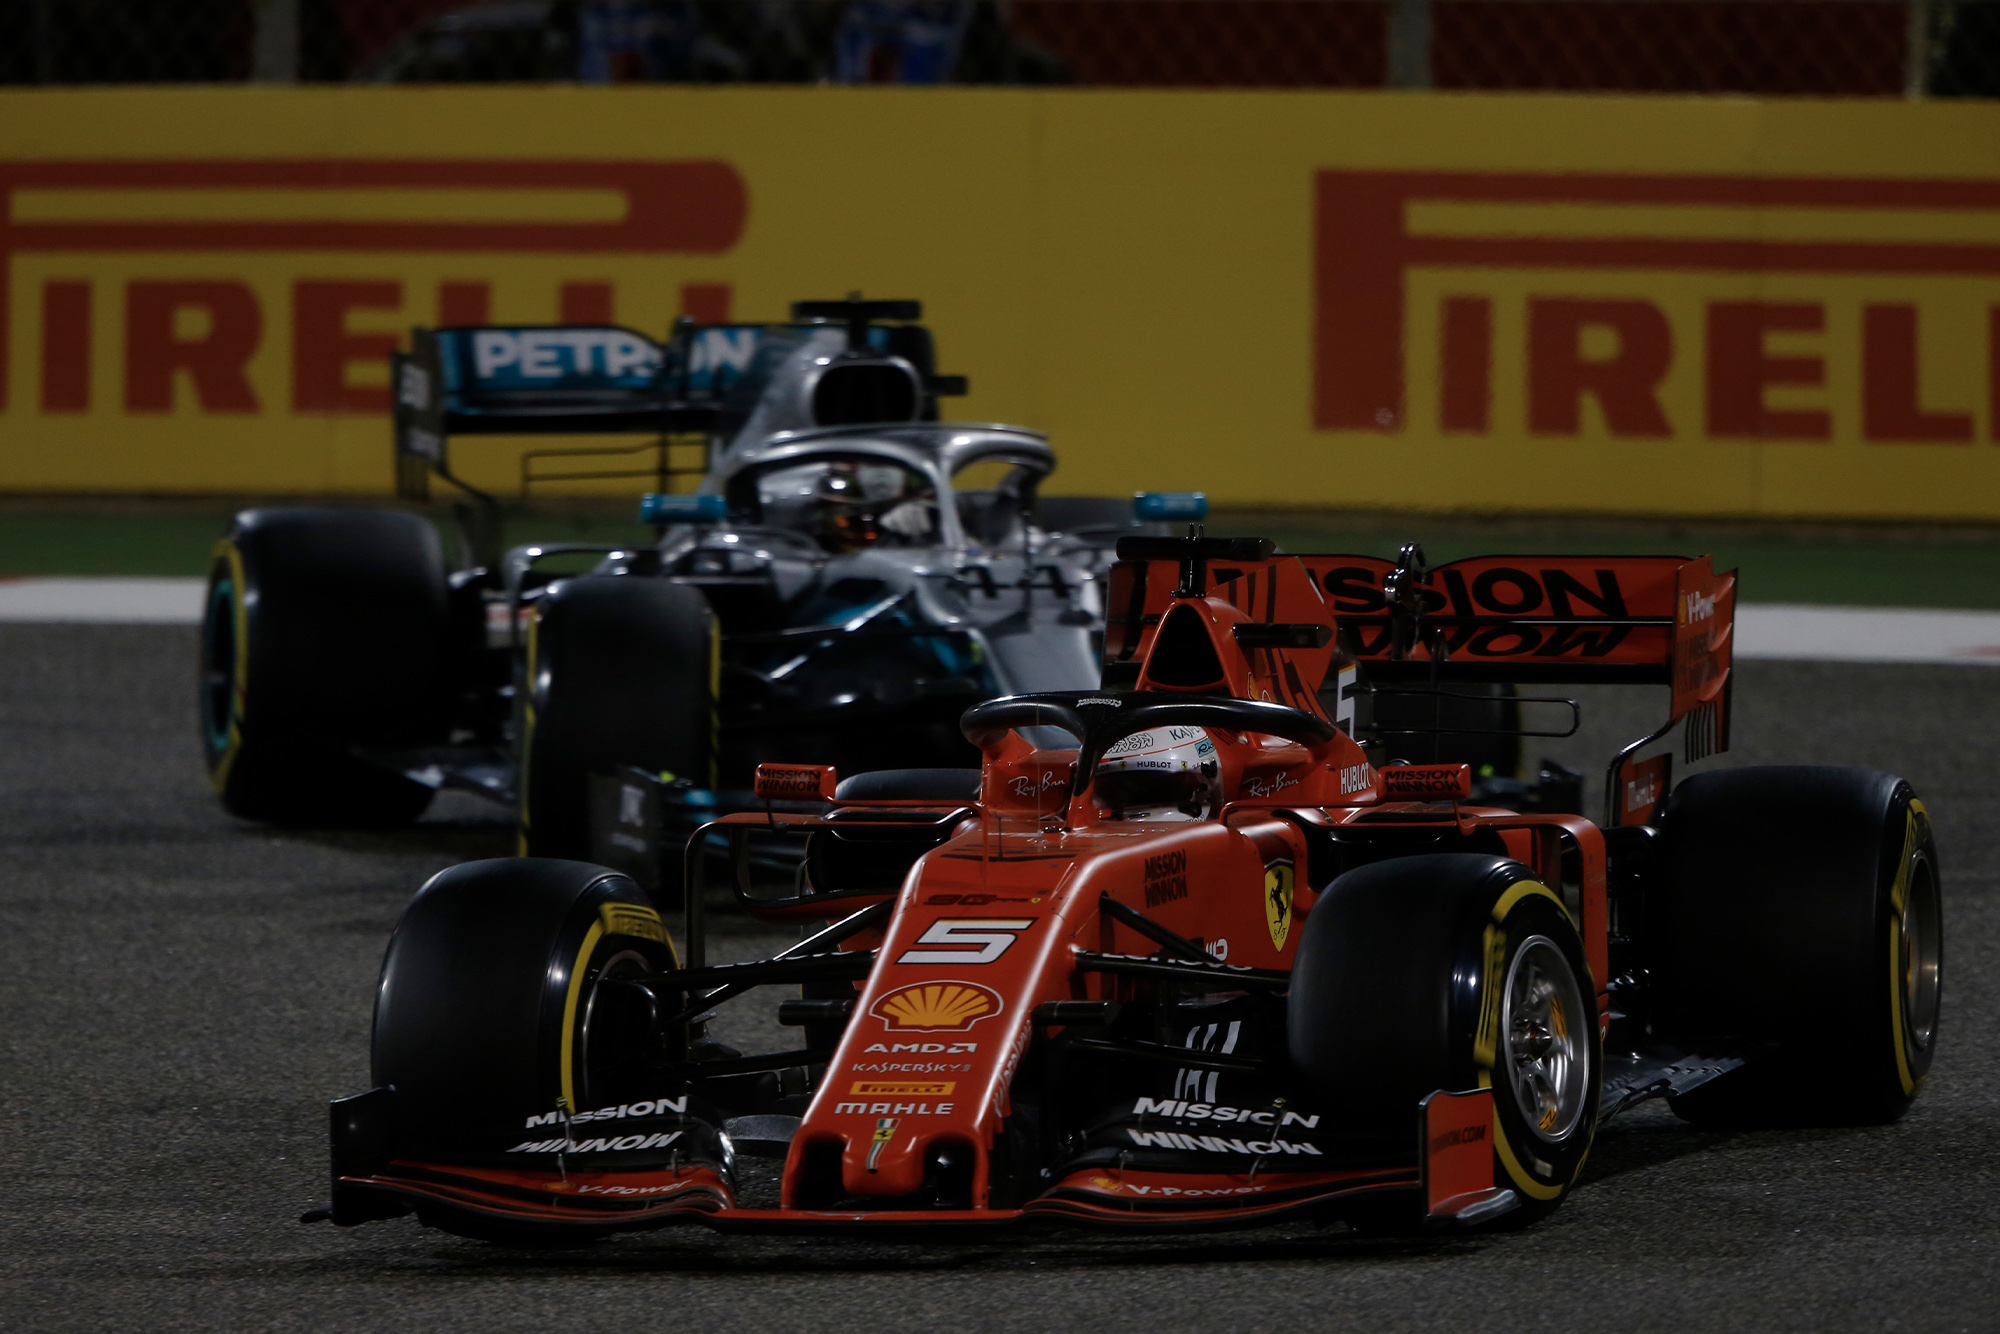 Sebastian Vettel and Lewis Hamilton during the Bahrain Grand Prix